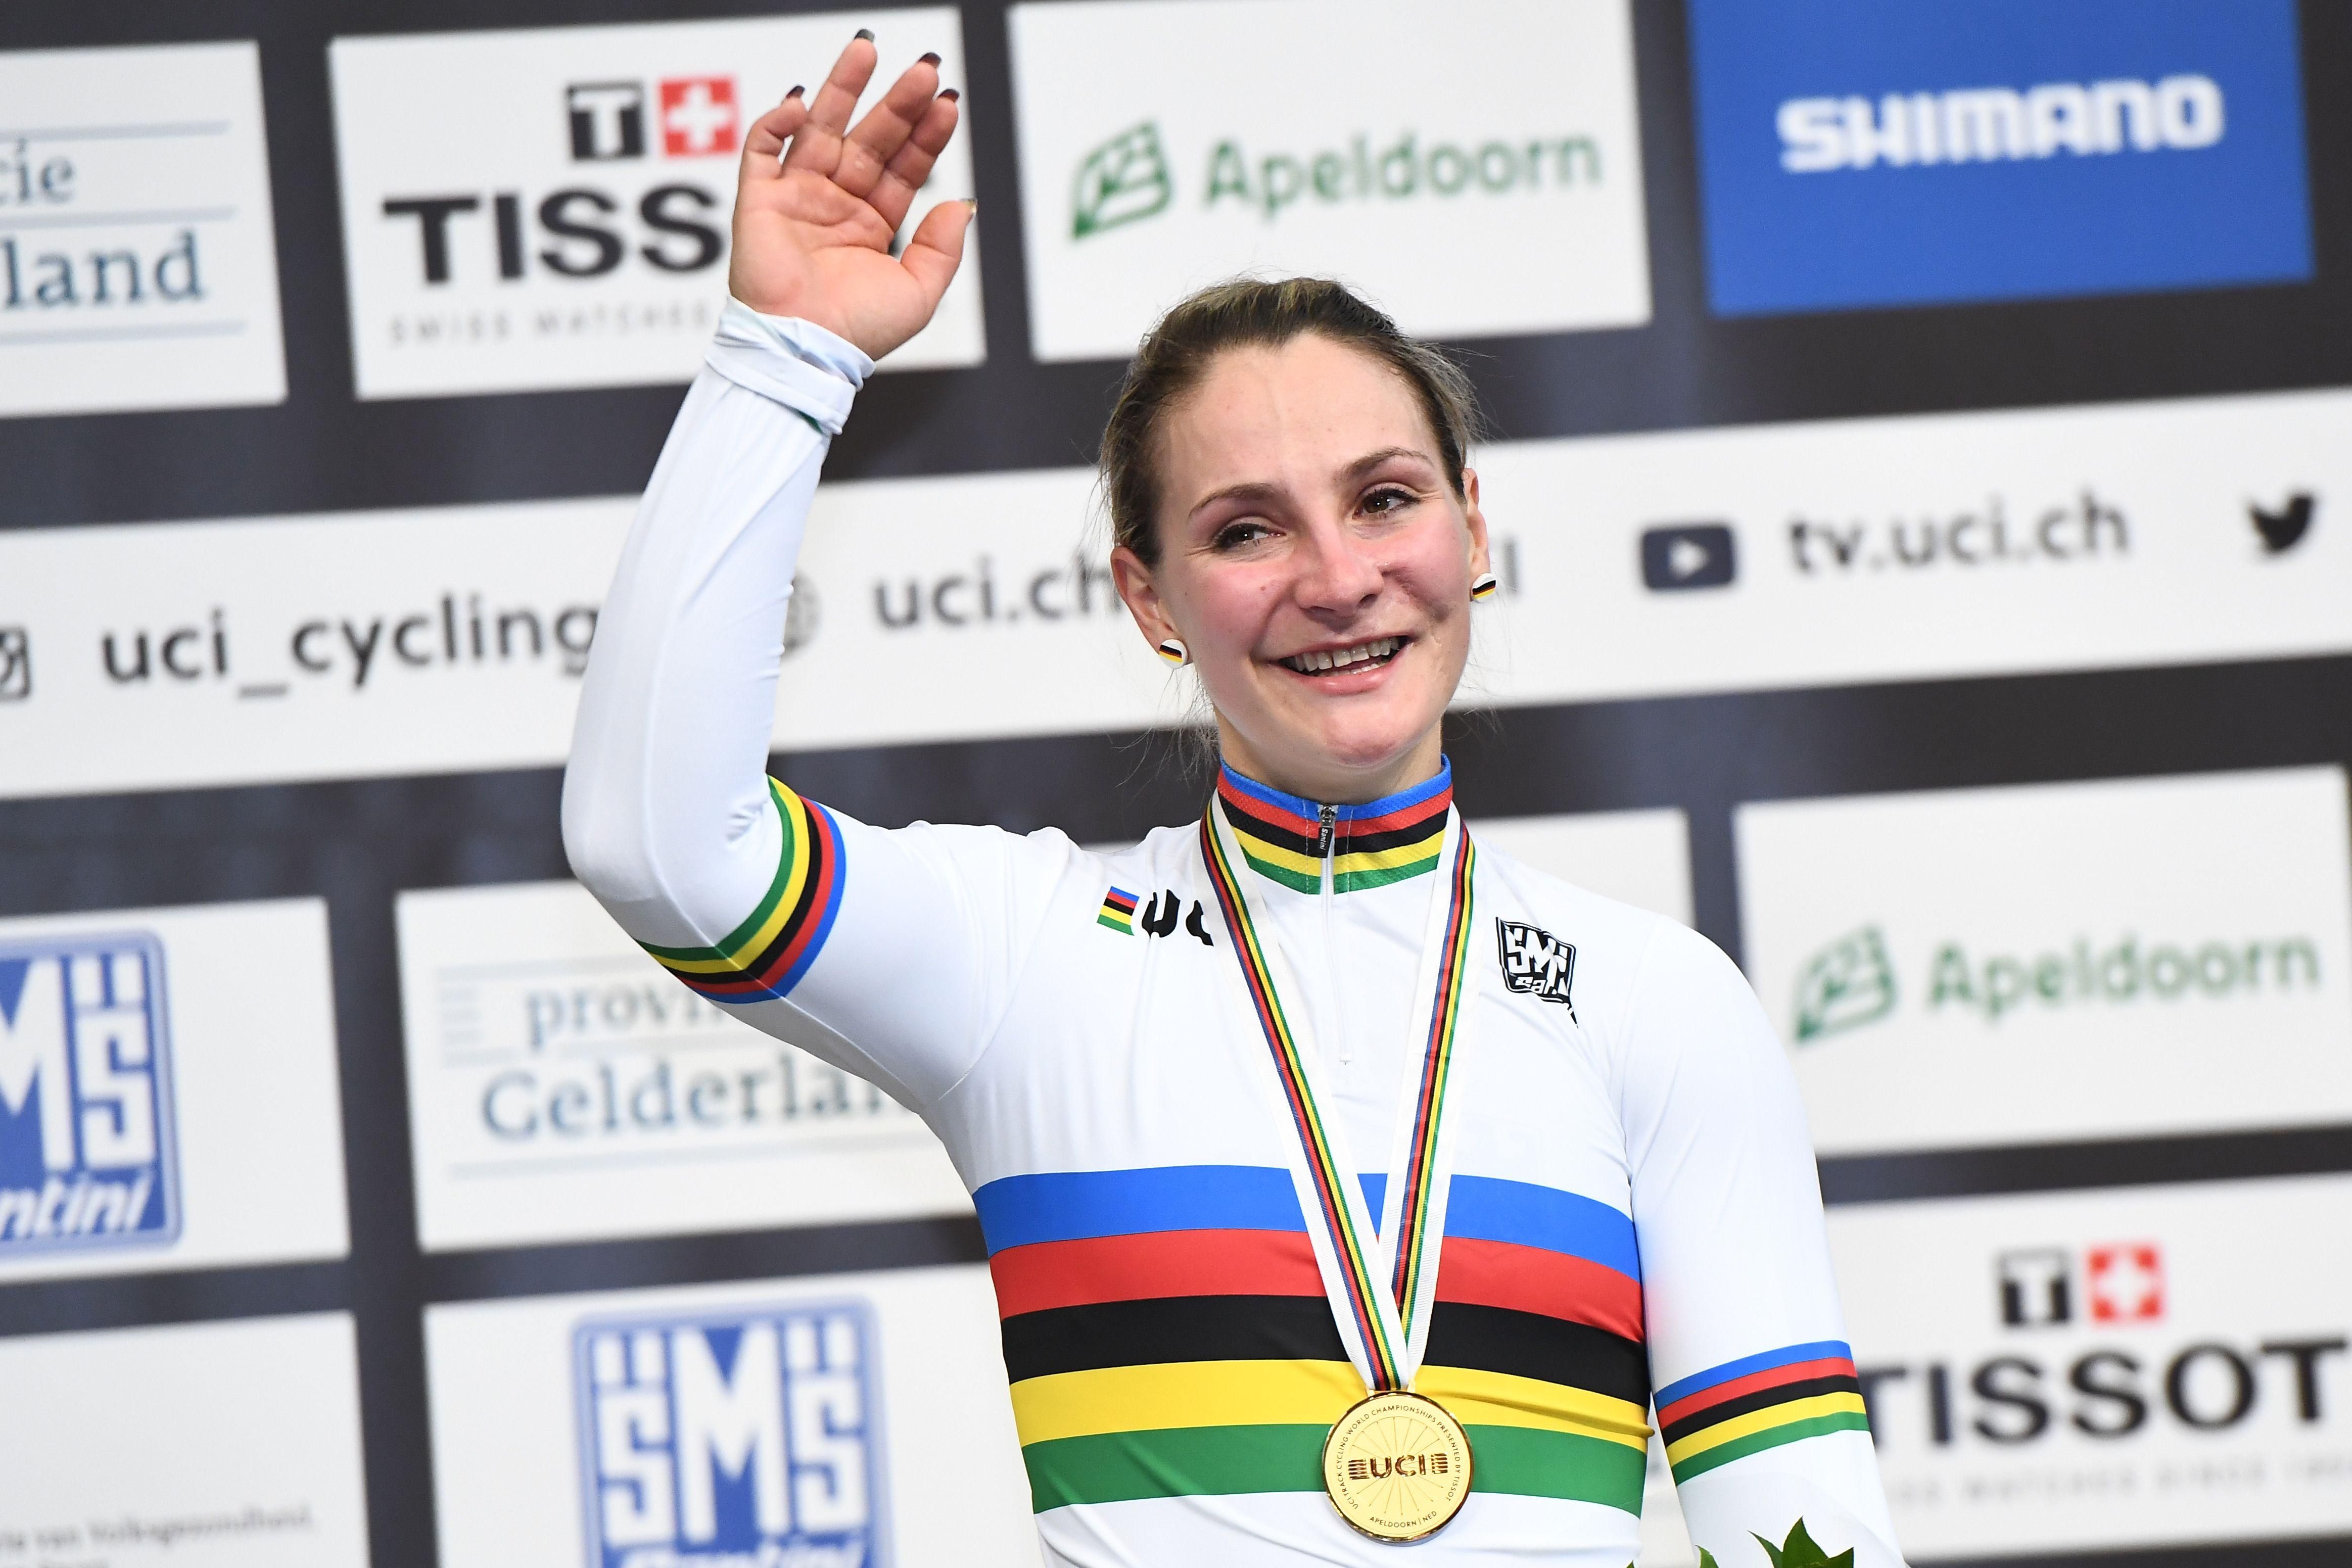 Kristina Vogel won two golds at the World Championships in March, three months before her career-ending accident